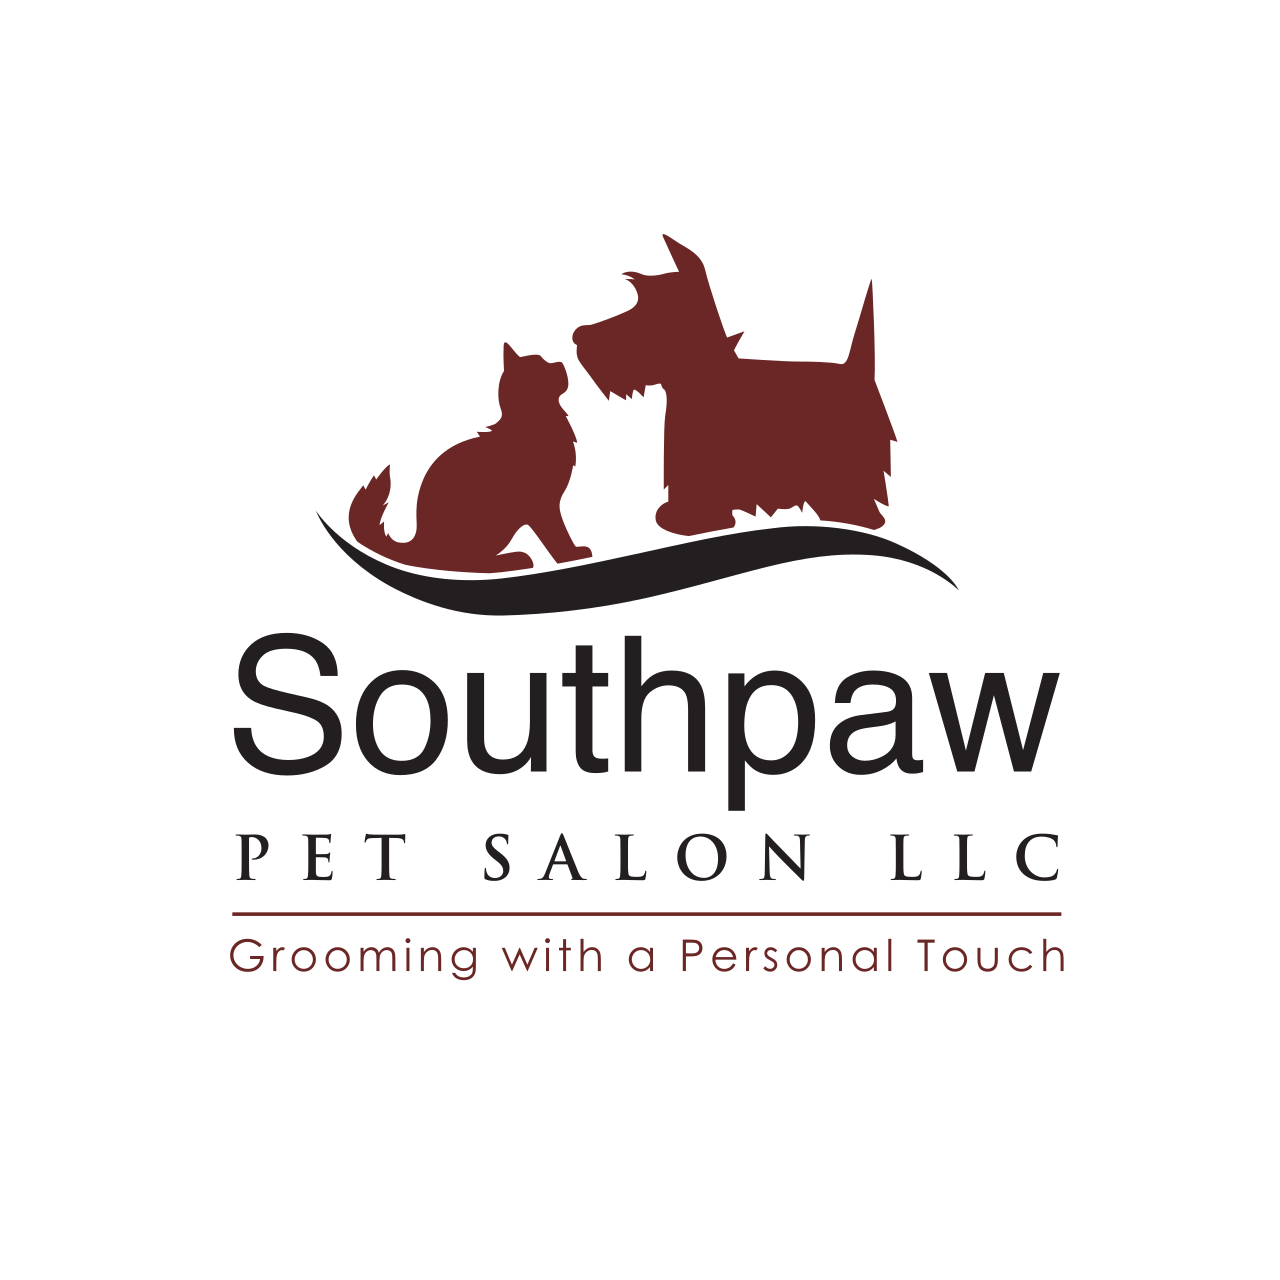 Southpaw Pet Salon LLC